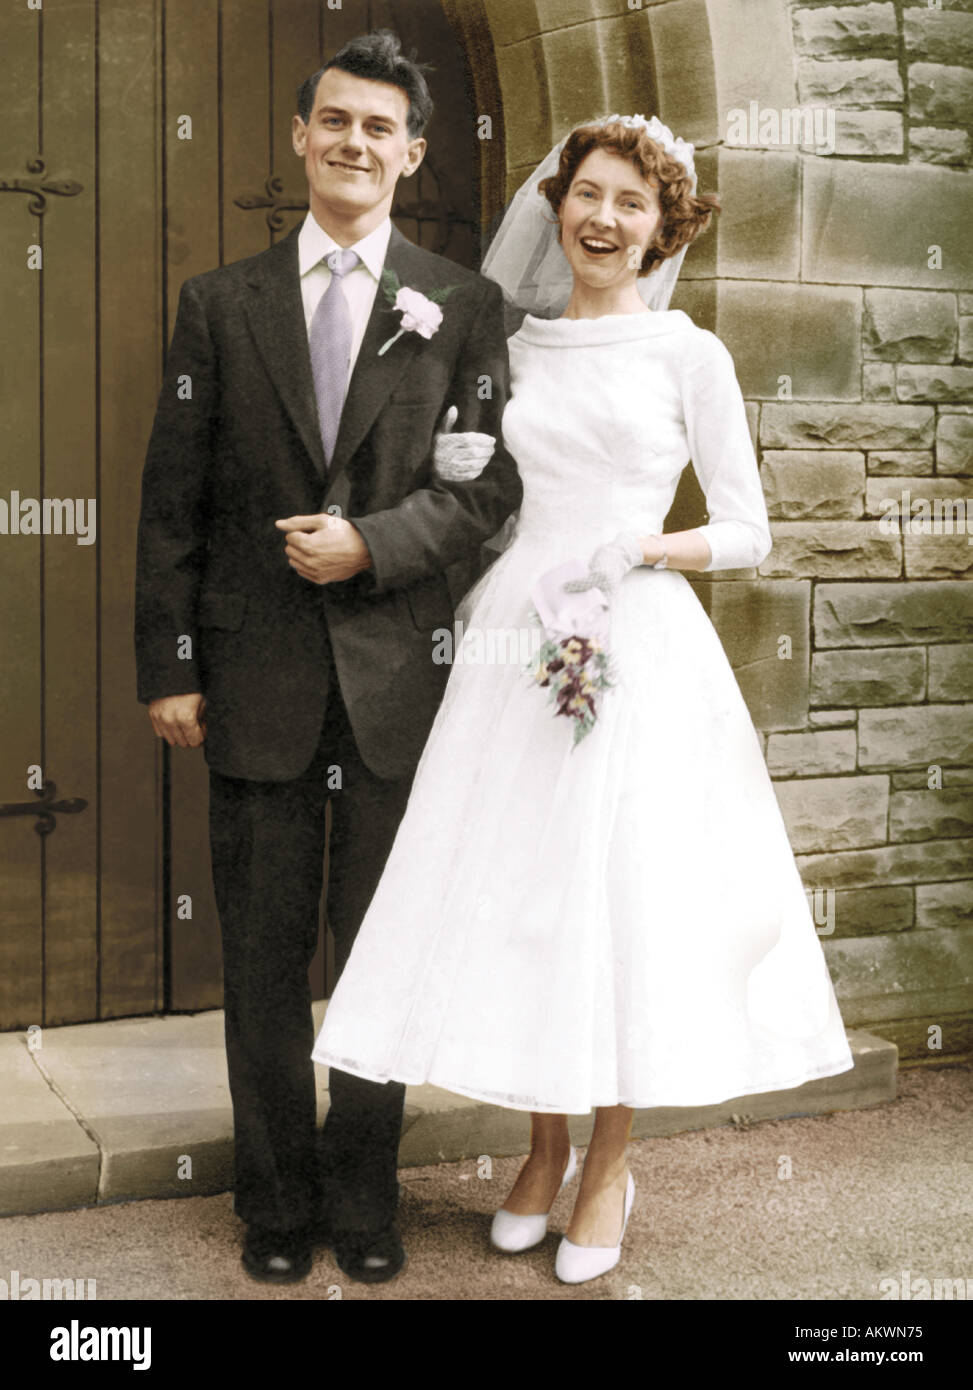 wedding pictures of black and white couples